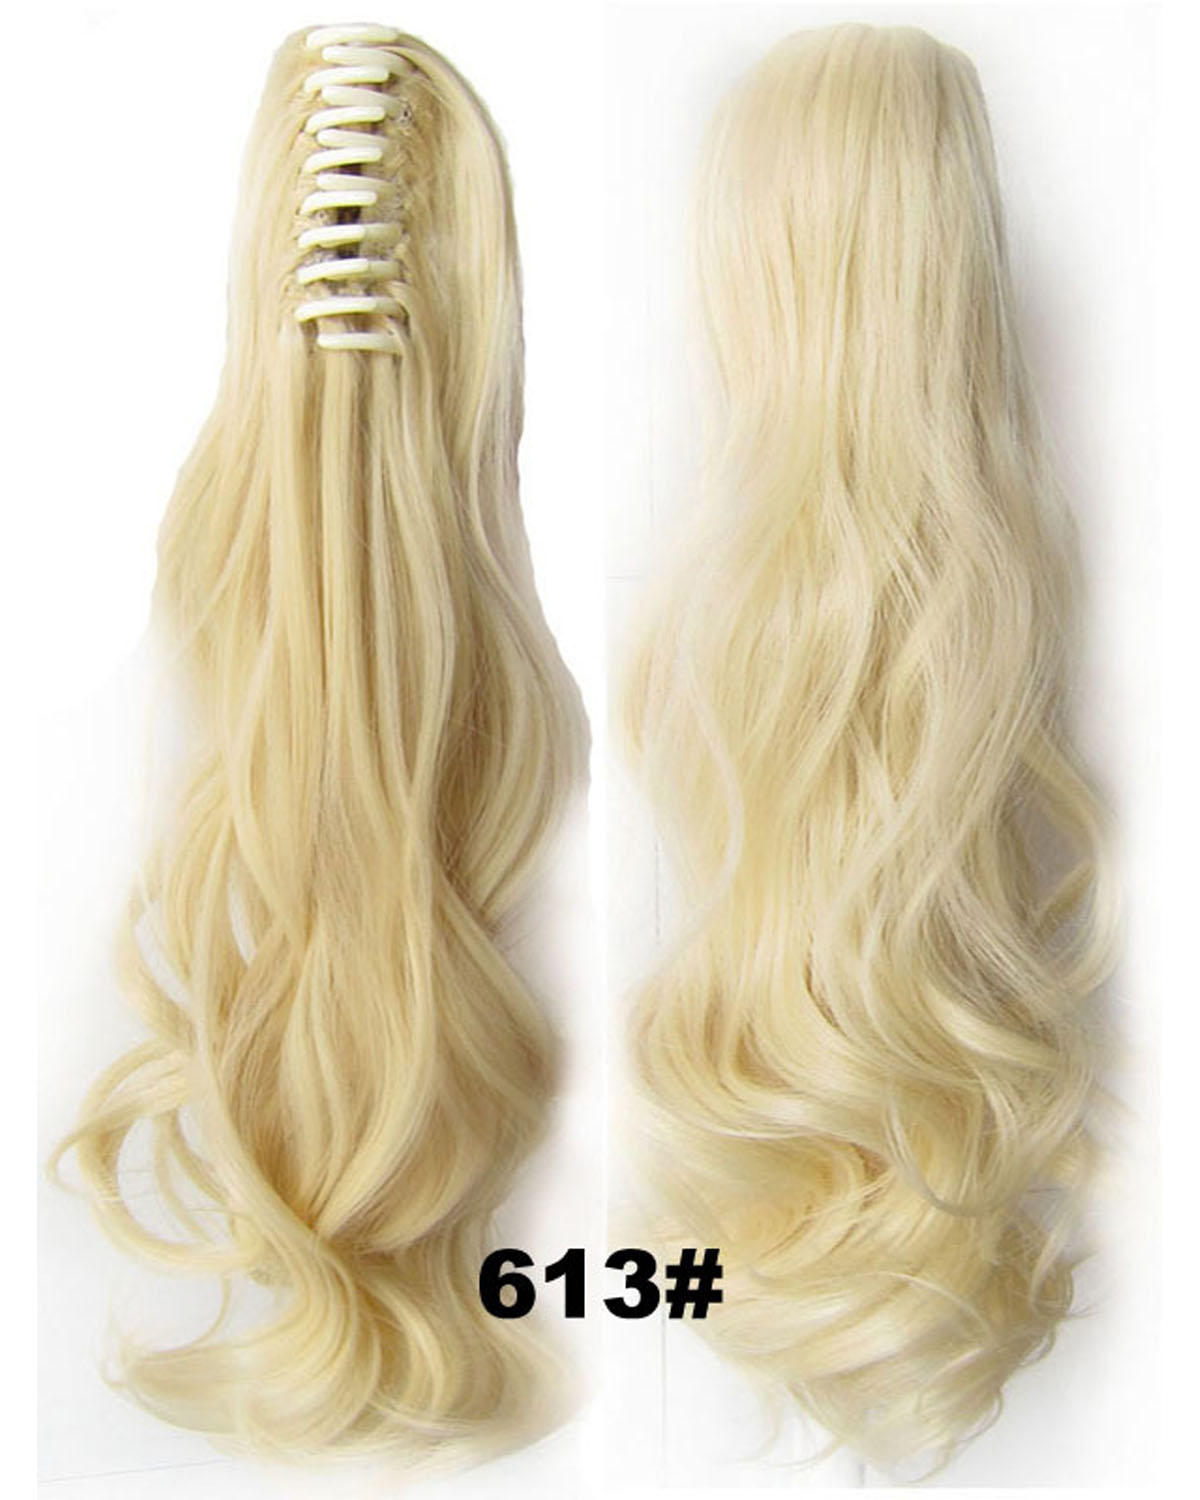 22 Inch Lady Body Wave Graceful Curly and Long Claw Chip Synthetic Hair Ponytail  613#